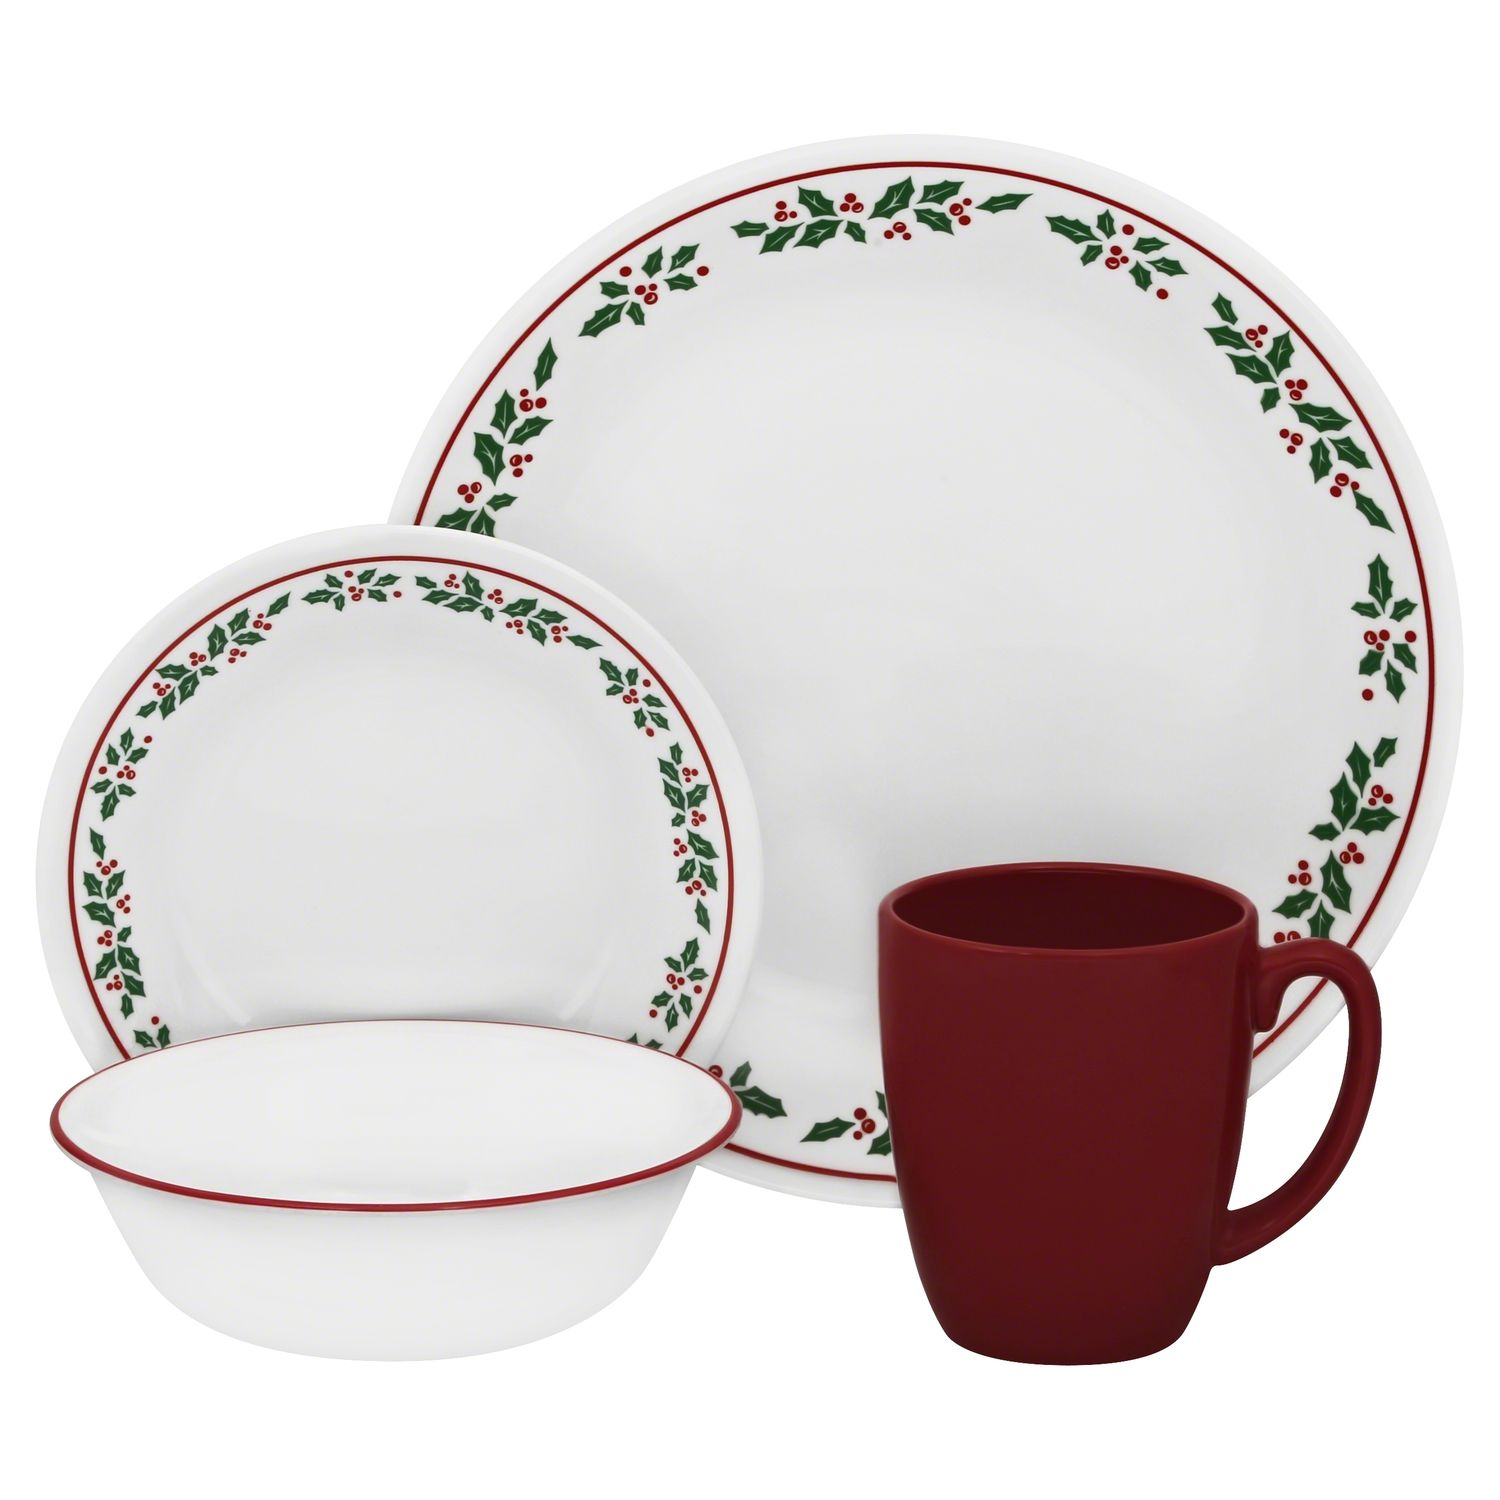 Dazzling Christmas Dinnerware For Christmas Decorating Ideas With Christmas Dinnerware Sets Clearance  sc 1 st  Straydogrecordingco.com & Kitchen u0026 Dining Sets: Dazzling Christmas Dinnerware For Christmas ...